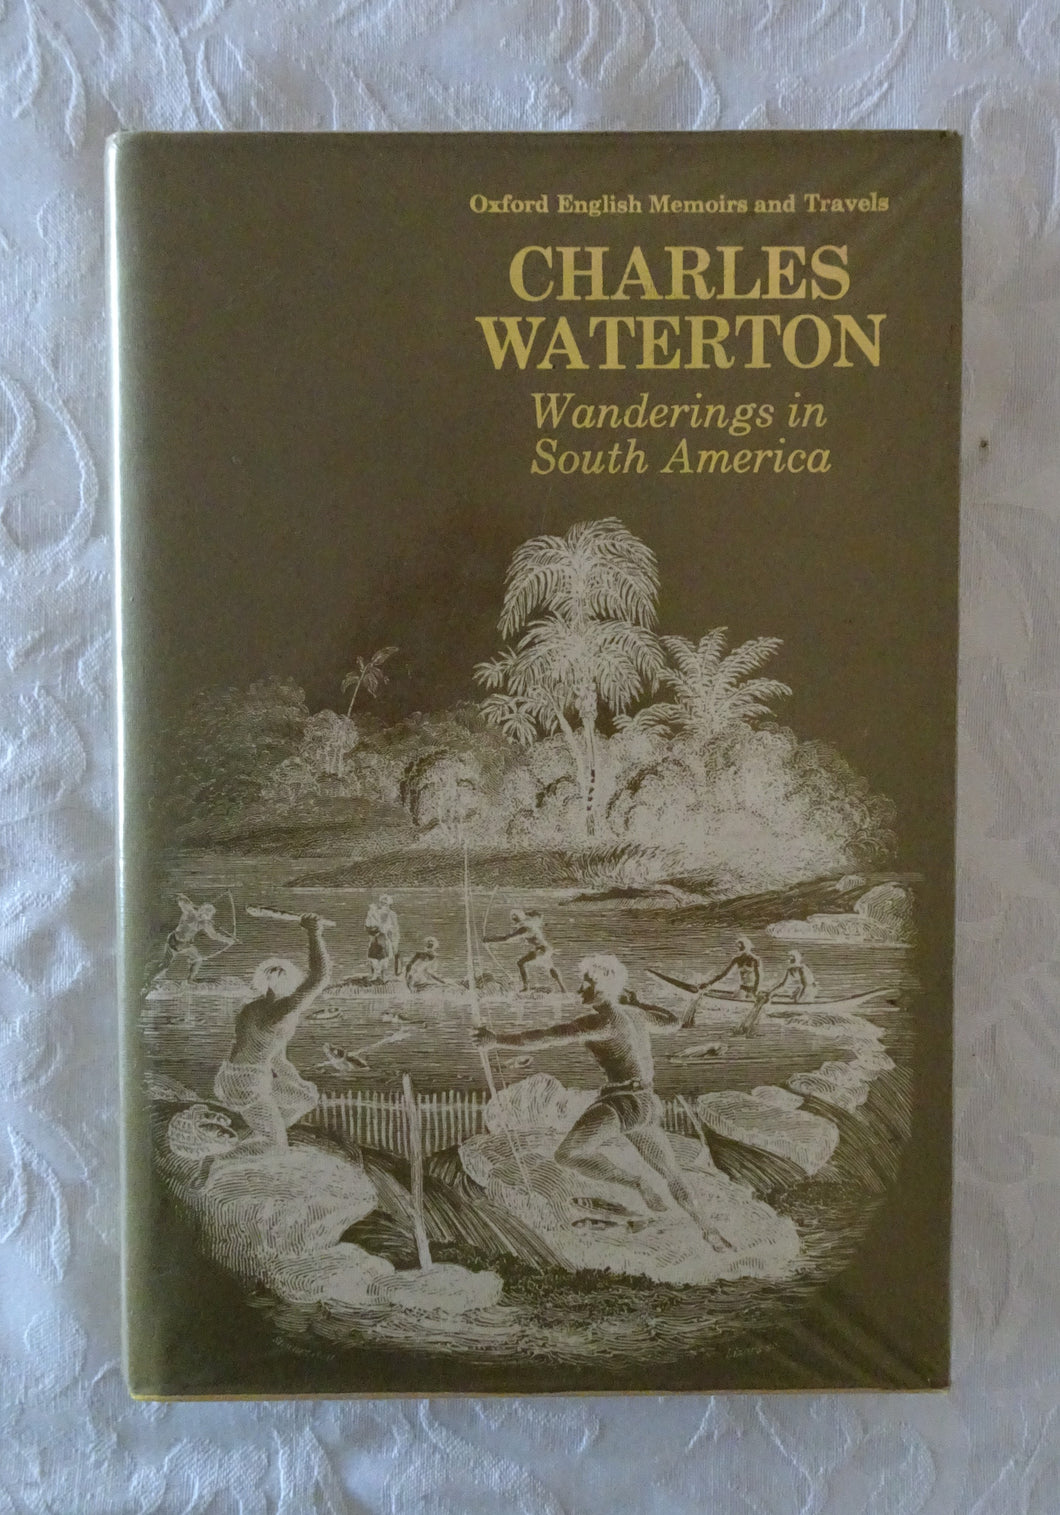 Wanderings in South America by Charles Waterton